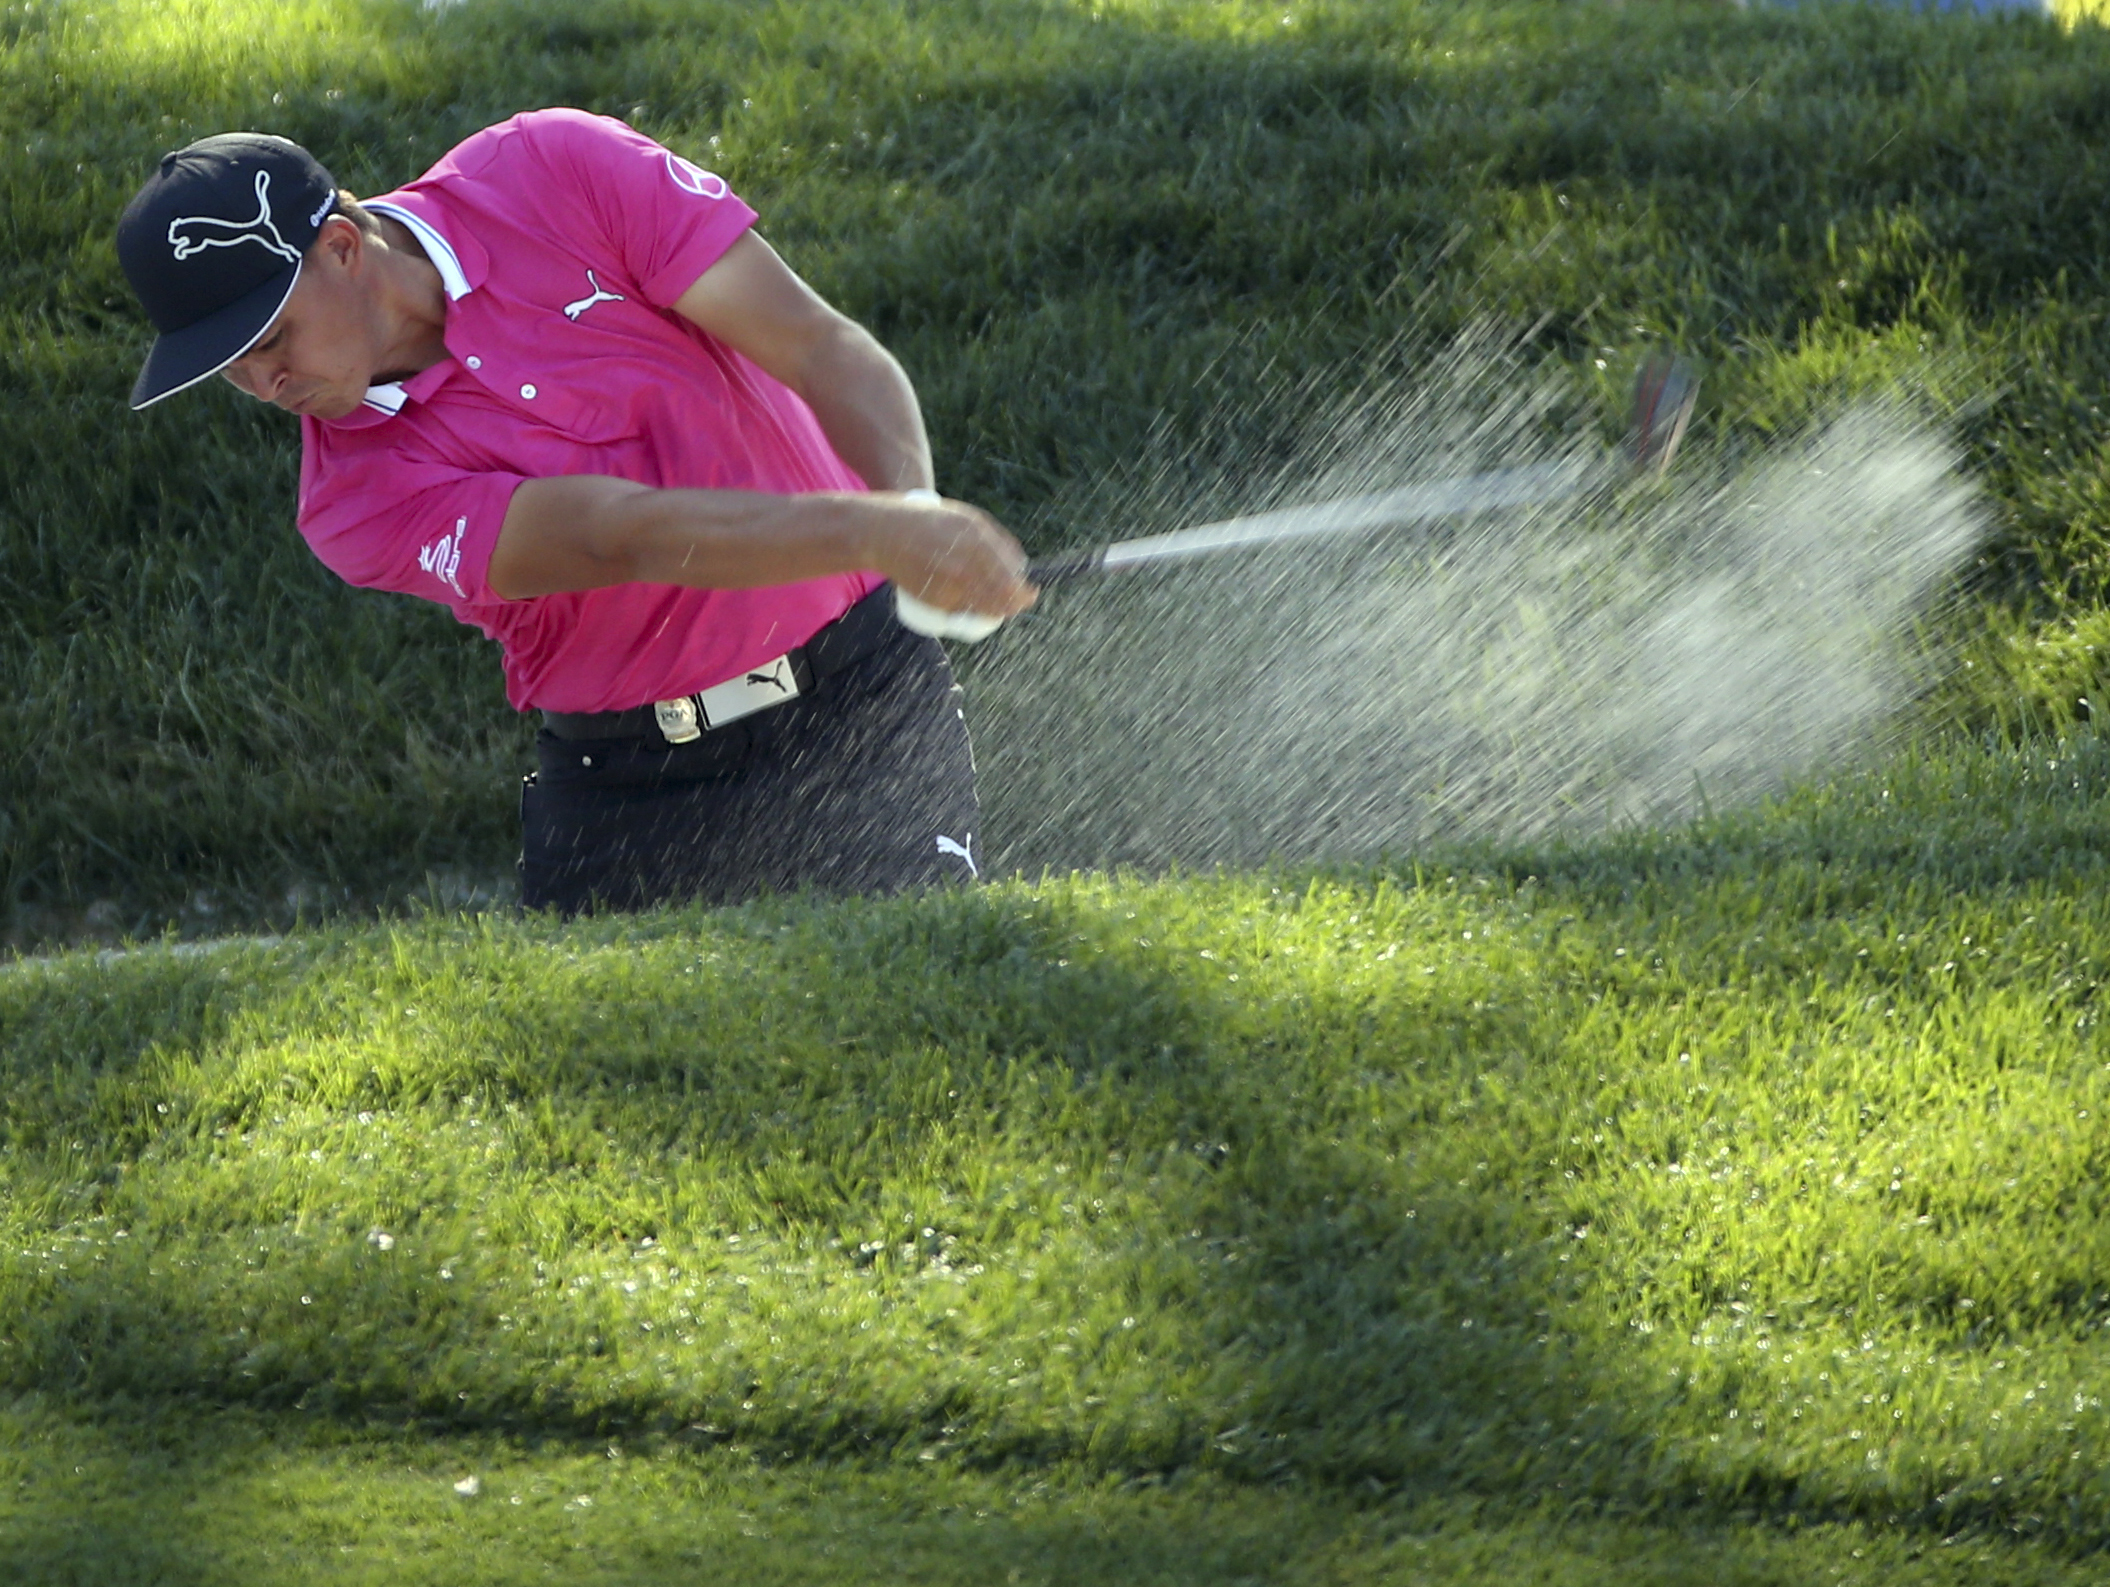 Rickie Fowler hits from a sand trap on the 15th hole during a practice round for the PGA Championship golf tournament at Baltusrol Golf Club in Springfield, N.J., Wednesday, July 27, 2016. (AP Photo/Seth Wenig)